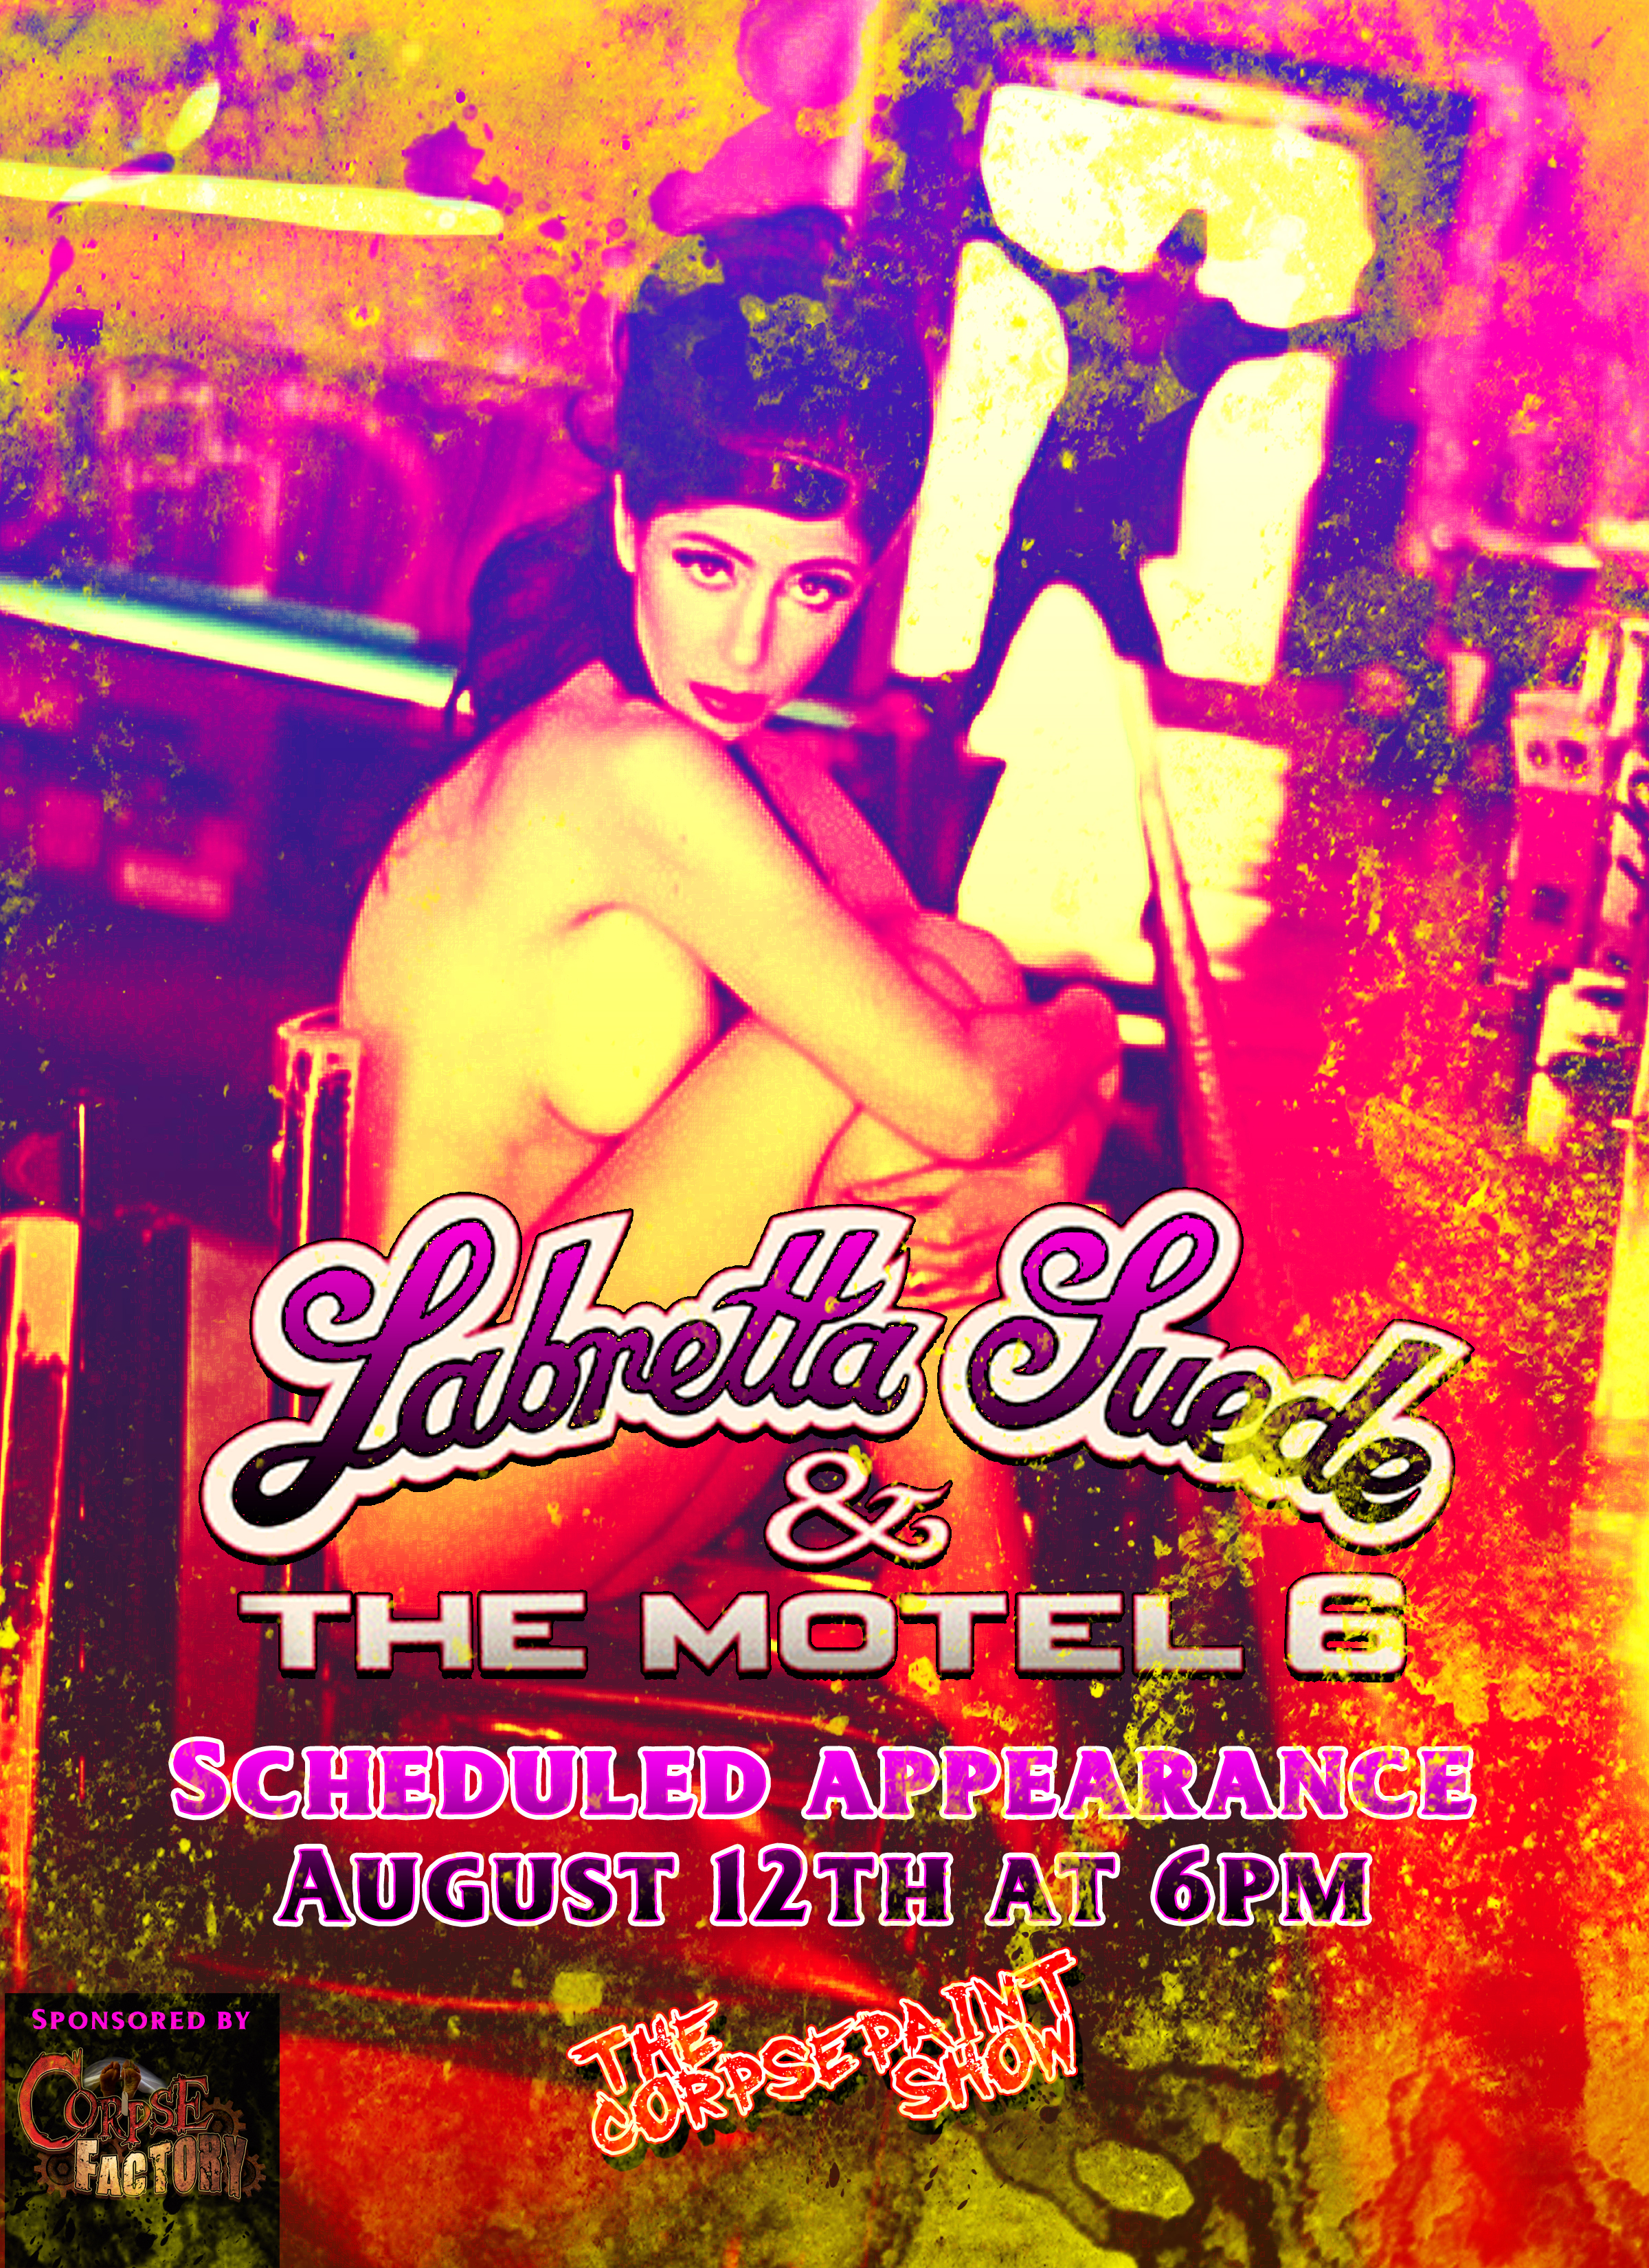 August 12th Labretta Suede